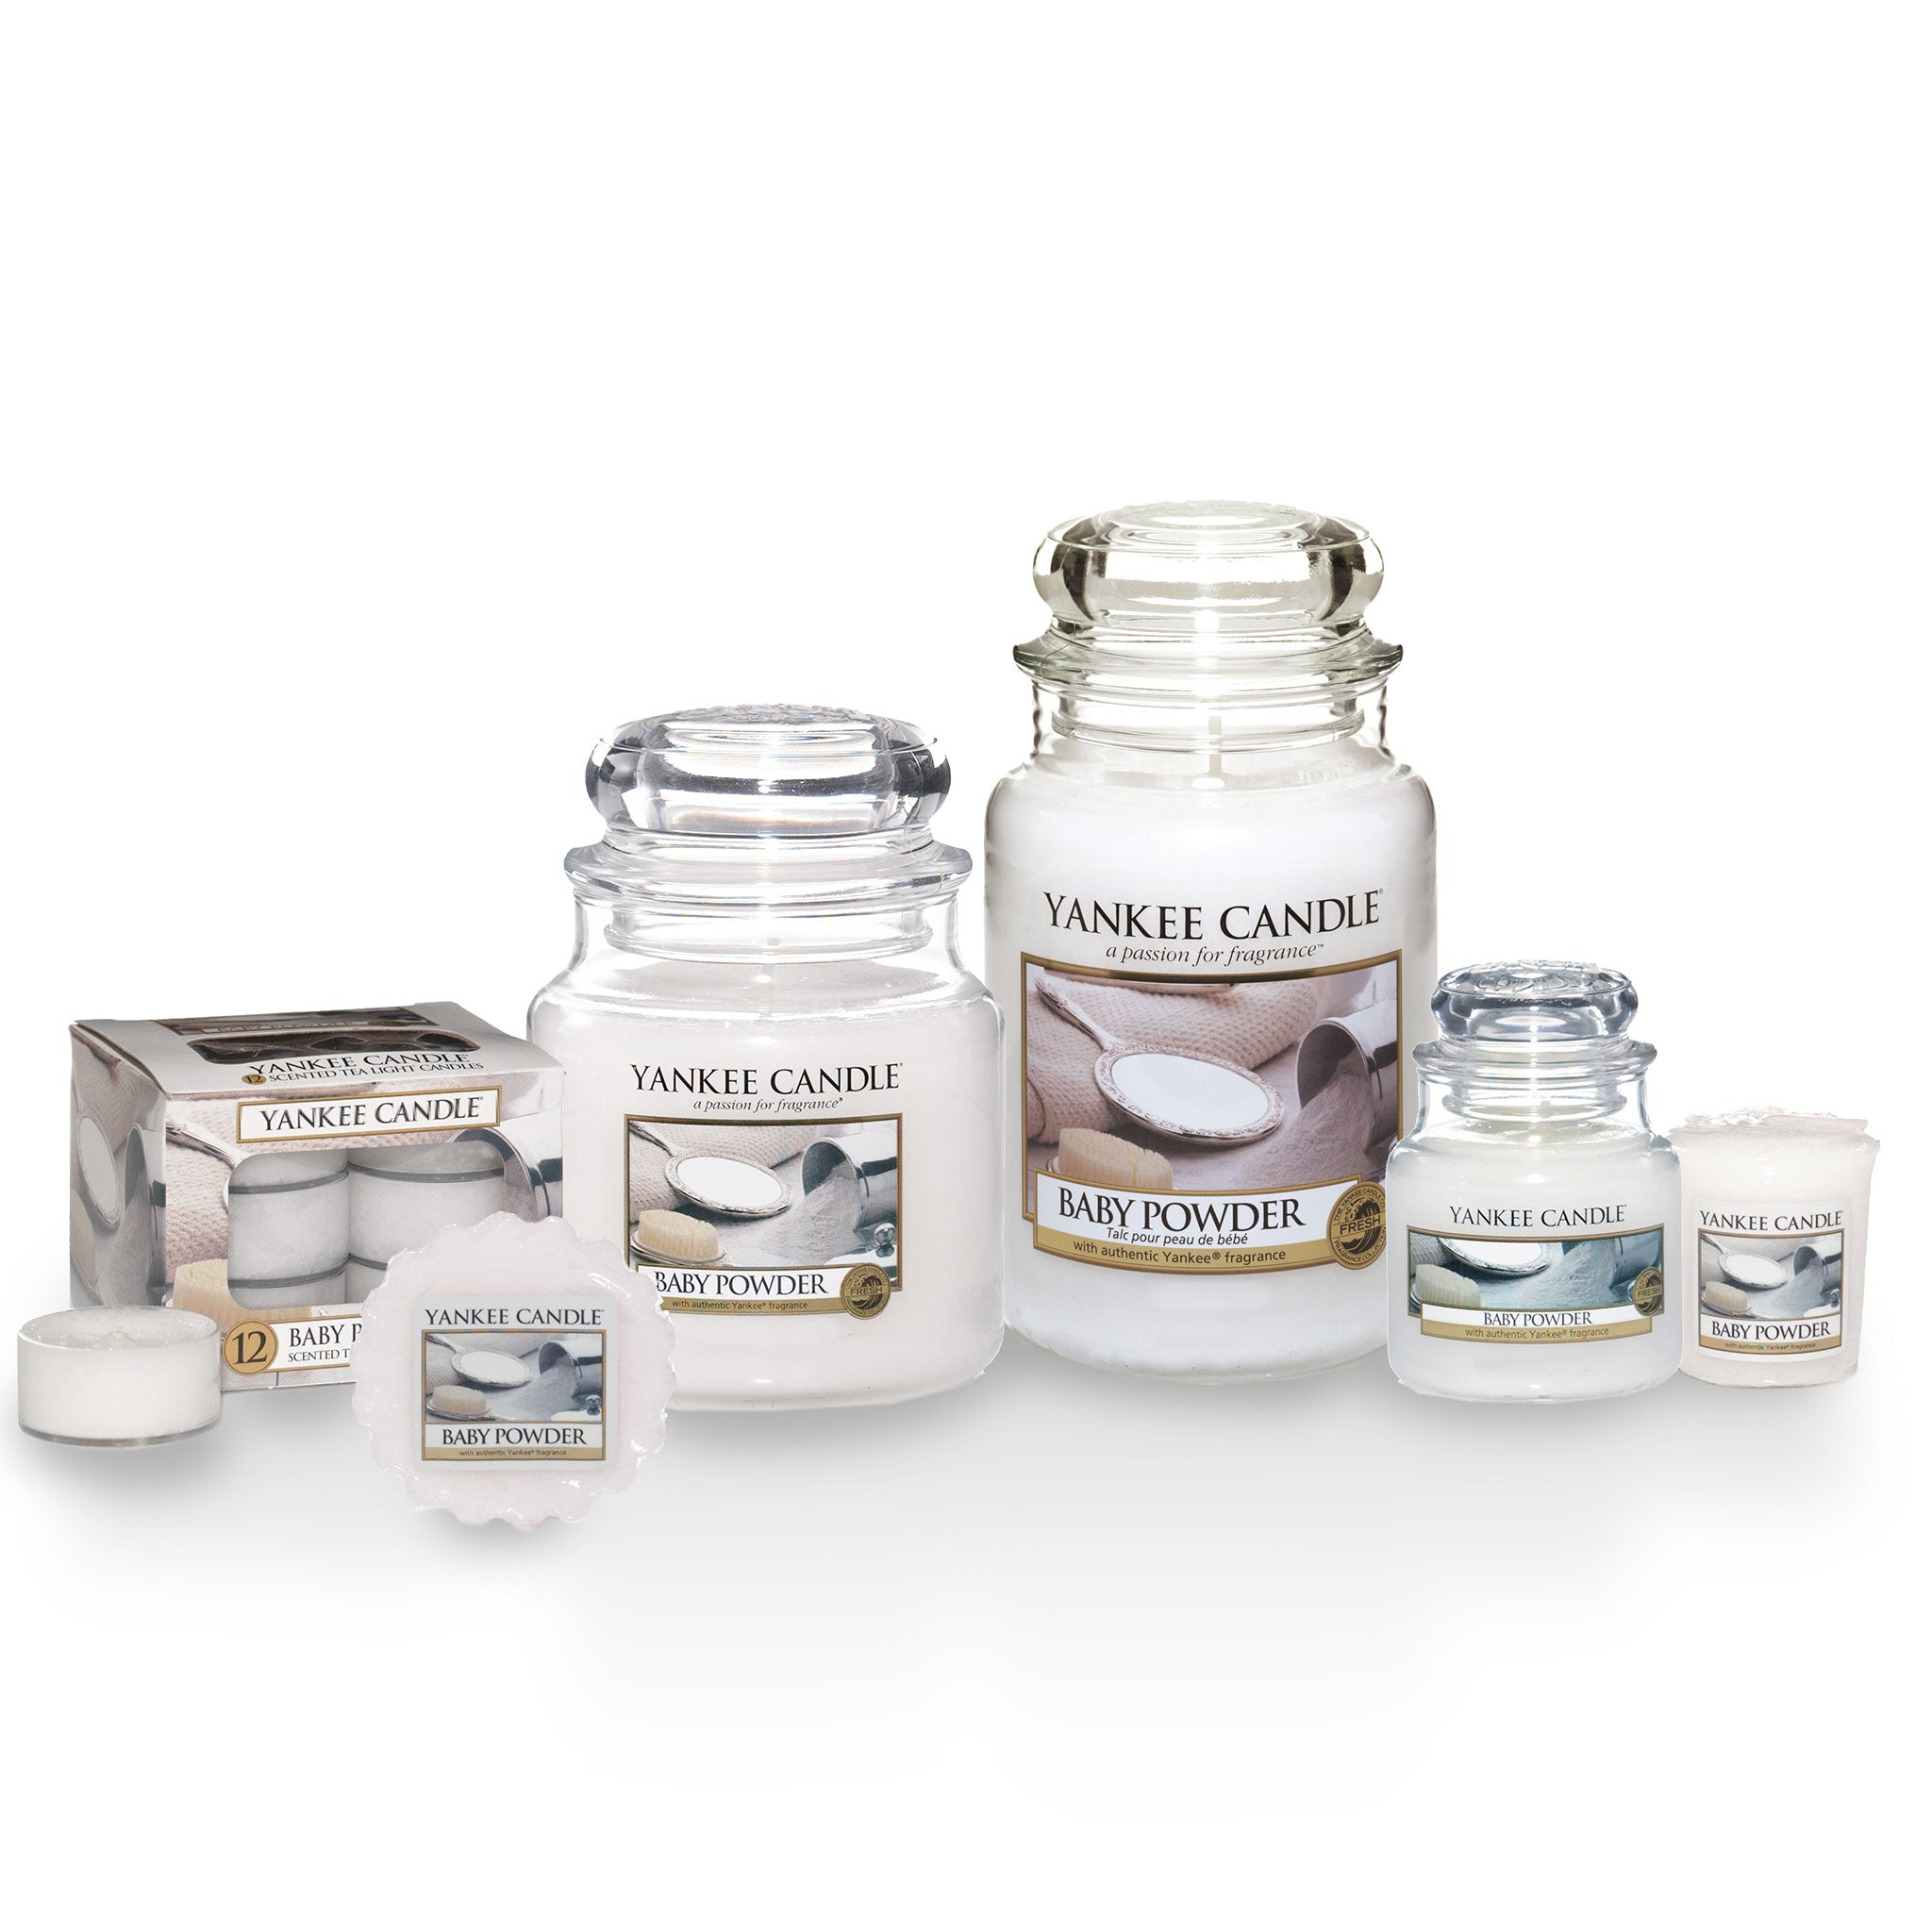 BABY POWDER -Yankee Candle- Giara Media